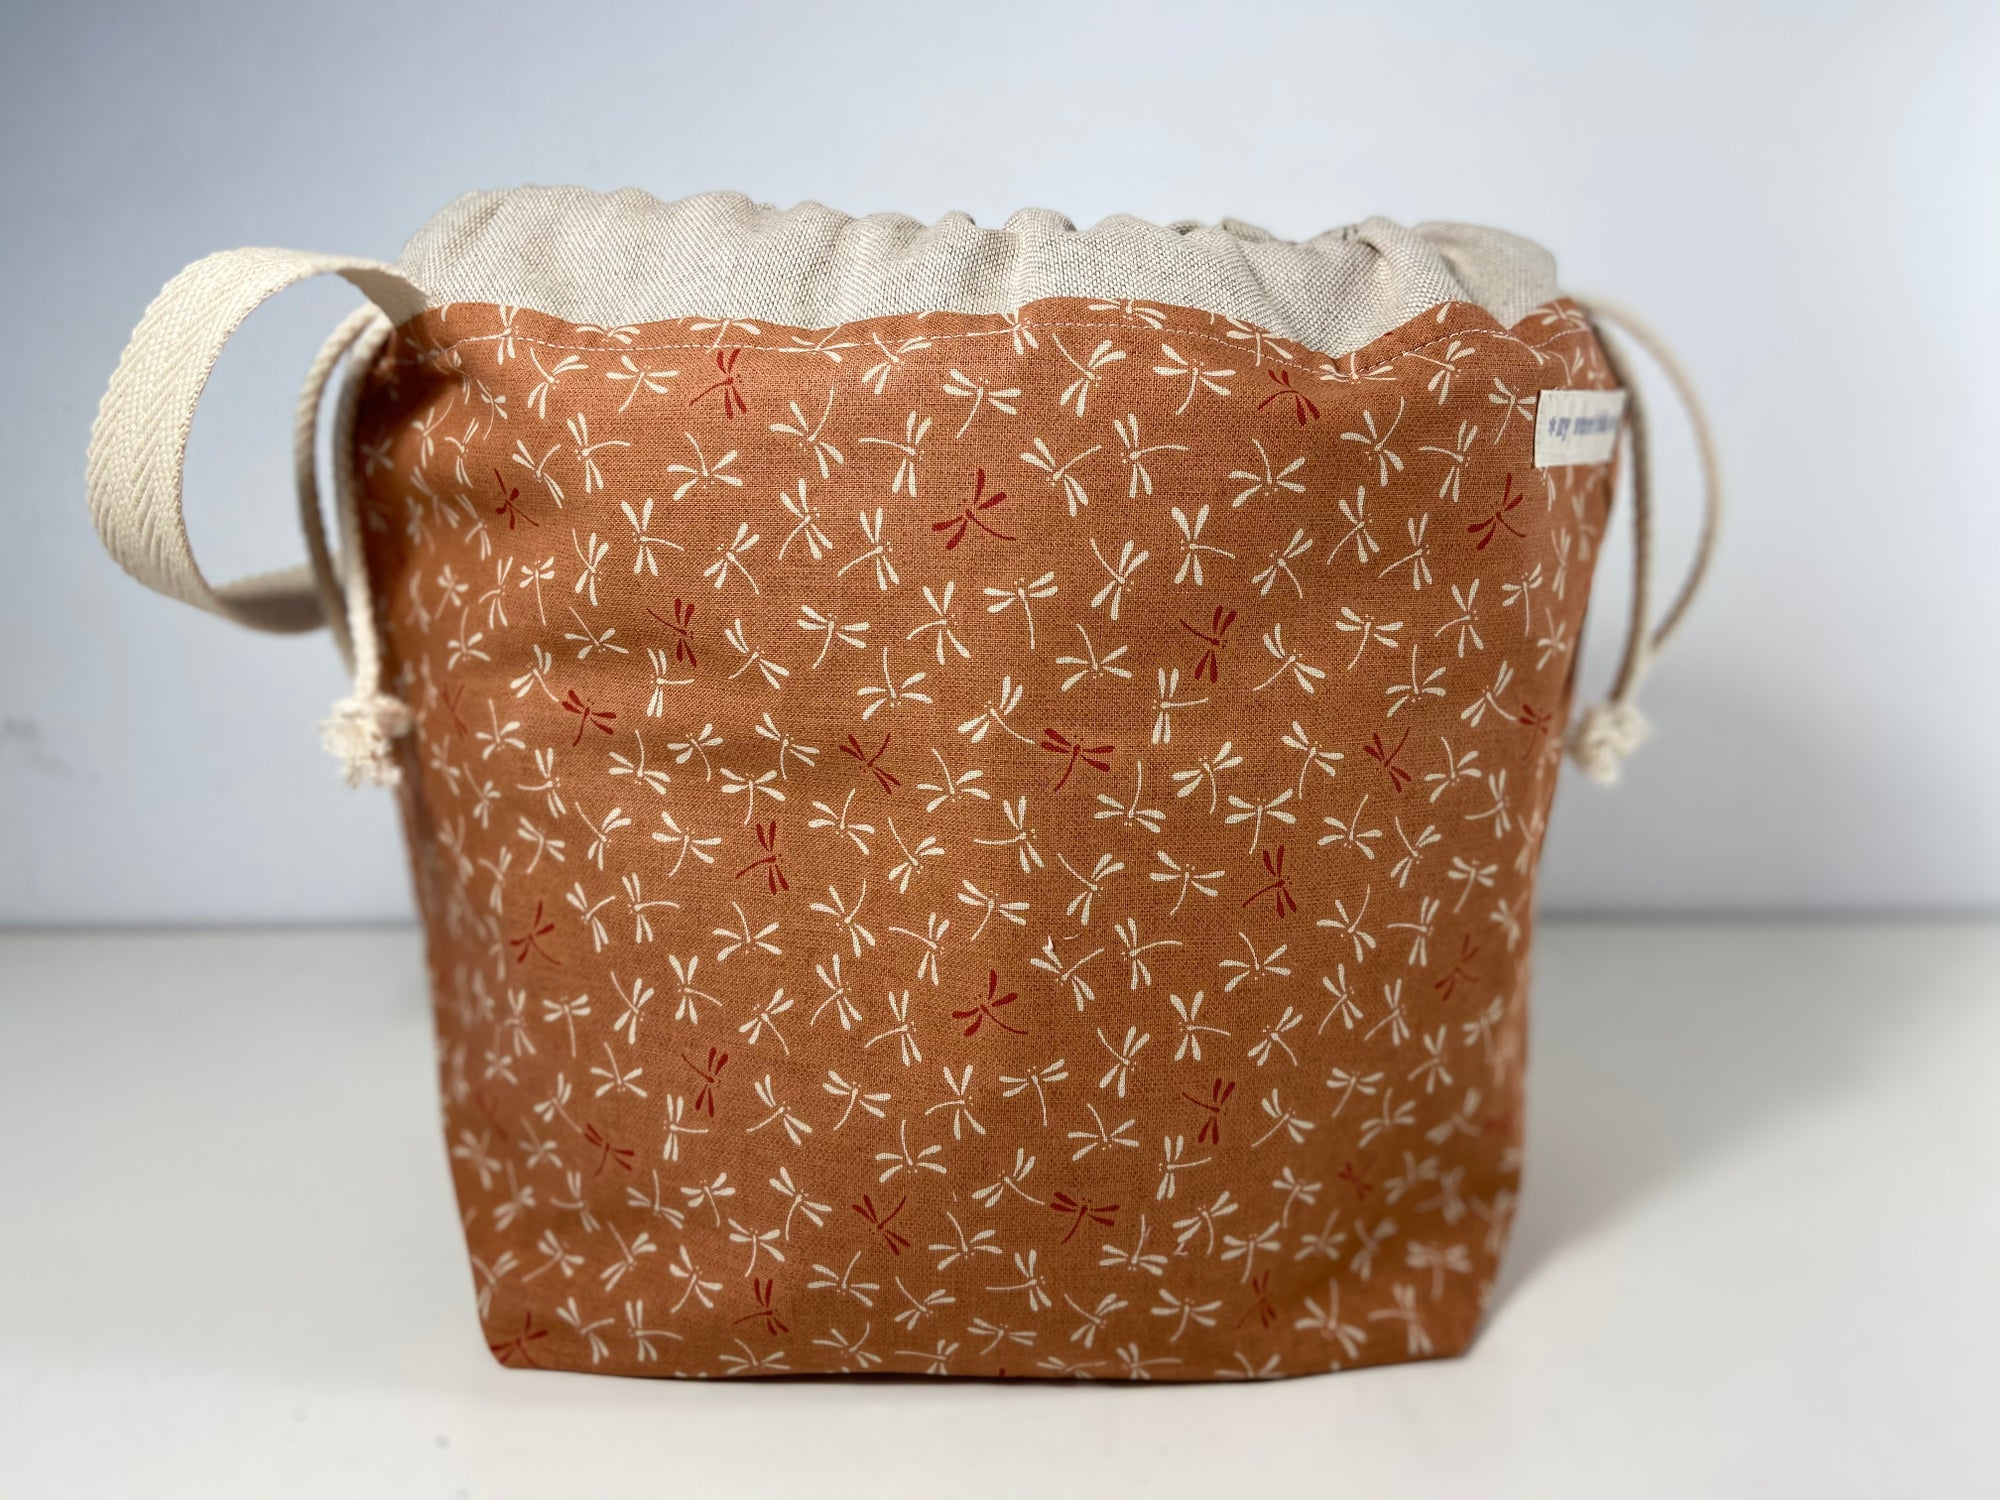 Image of Dragonfly Project bag